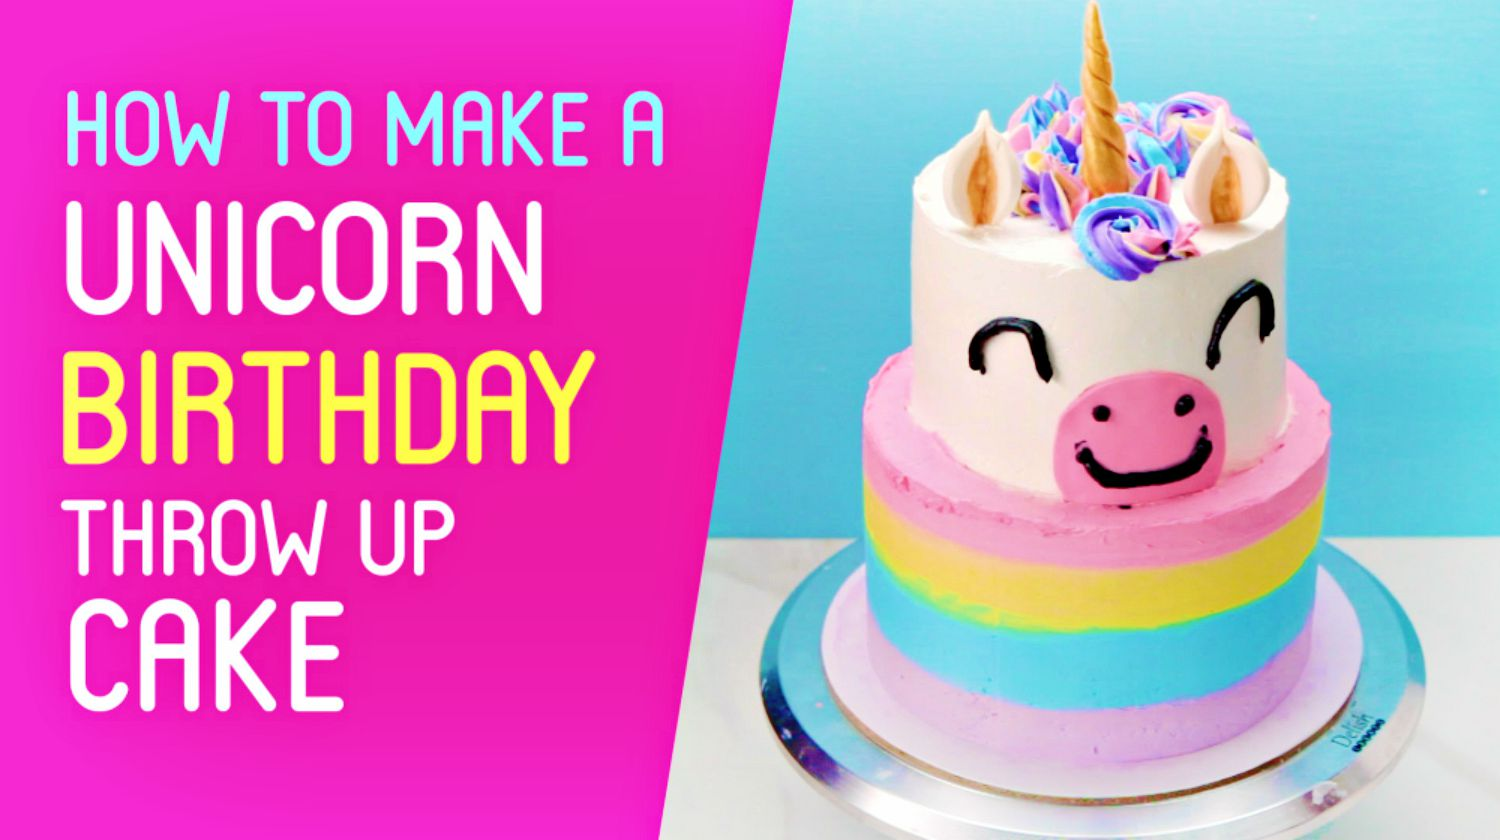 Feature | Homemade unicorn cake | Unicorn Throw Up Cake | How To Make A Unicorn Birthday Cake and Cupcakes